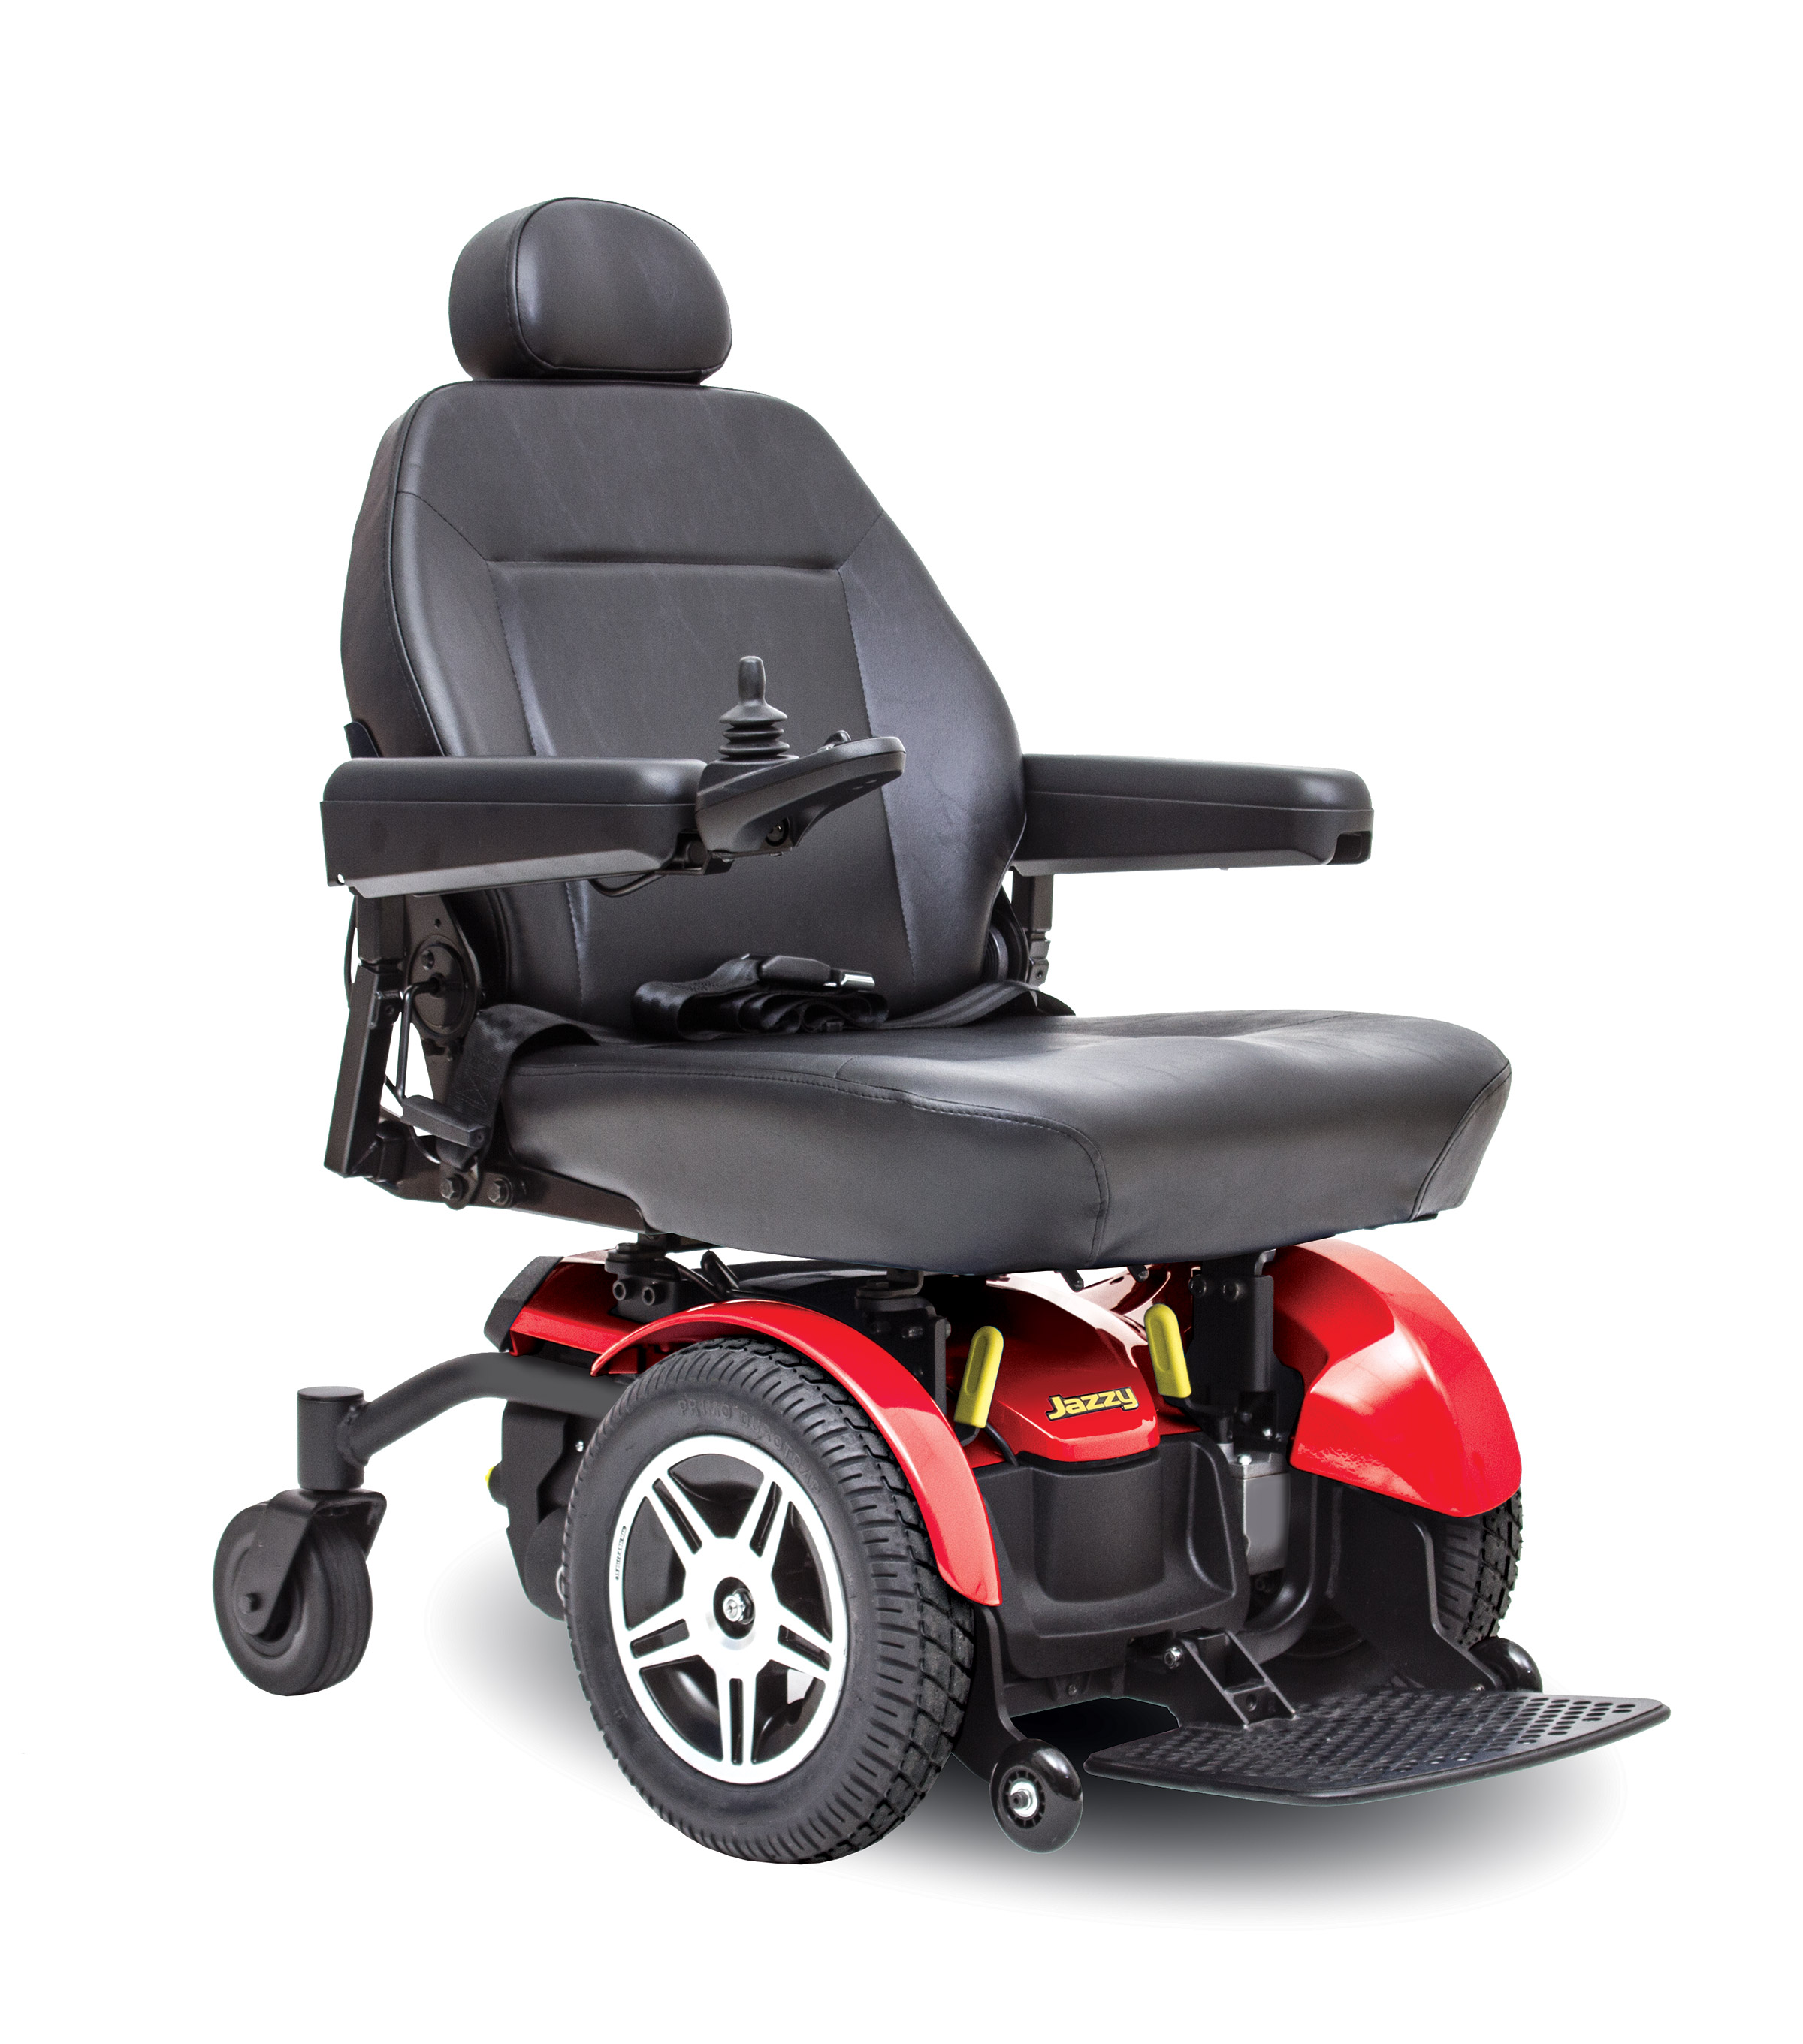 Pride Jazzy Elite 14 Power Chair at low price